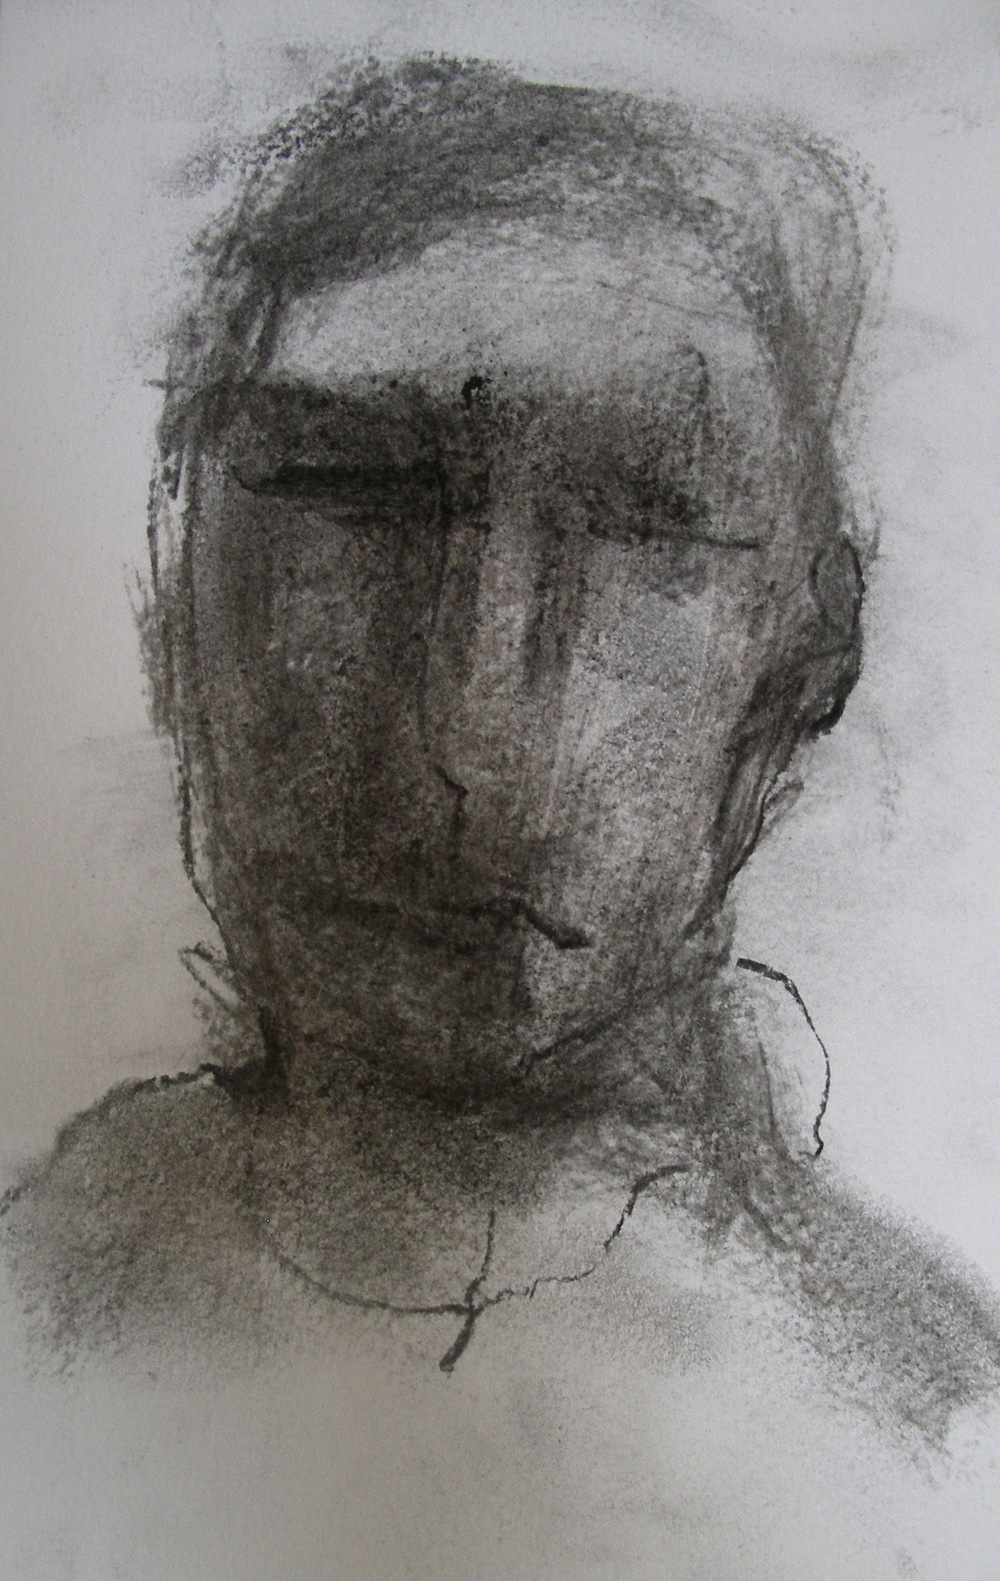 Portrait_Drawing charcoal [13x20cm] 2013 Laura Hudson.jpg